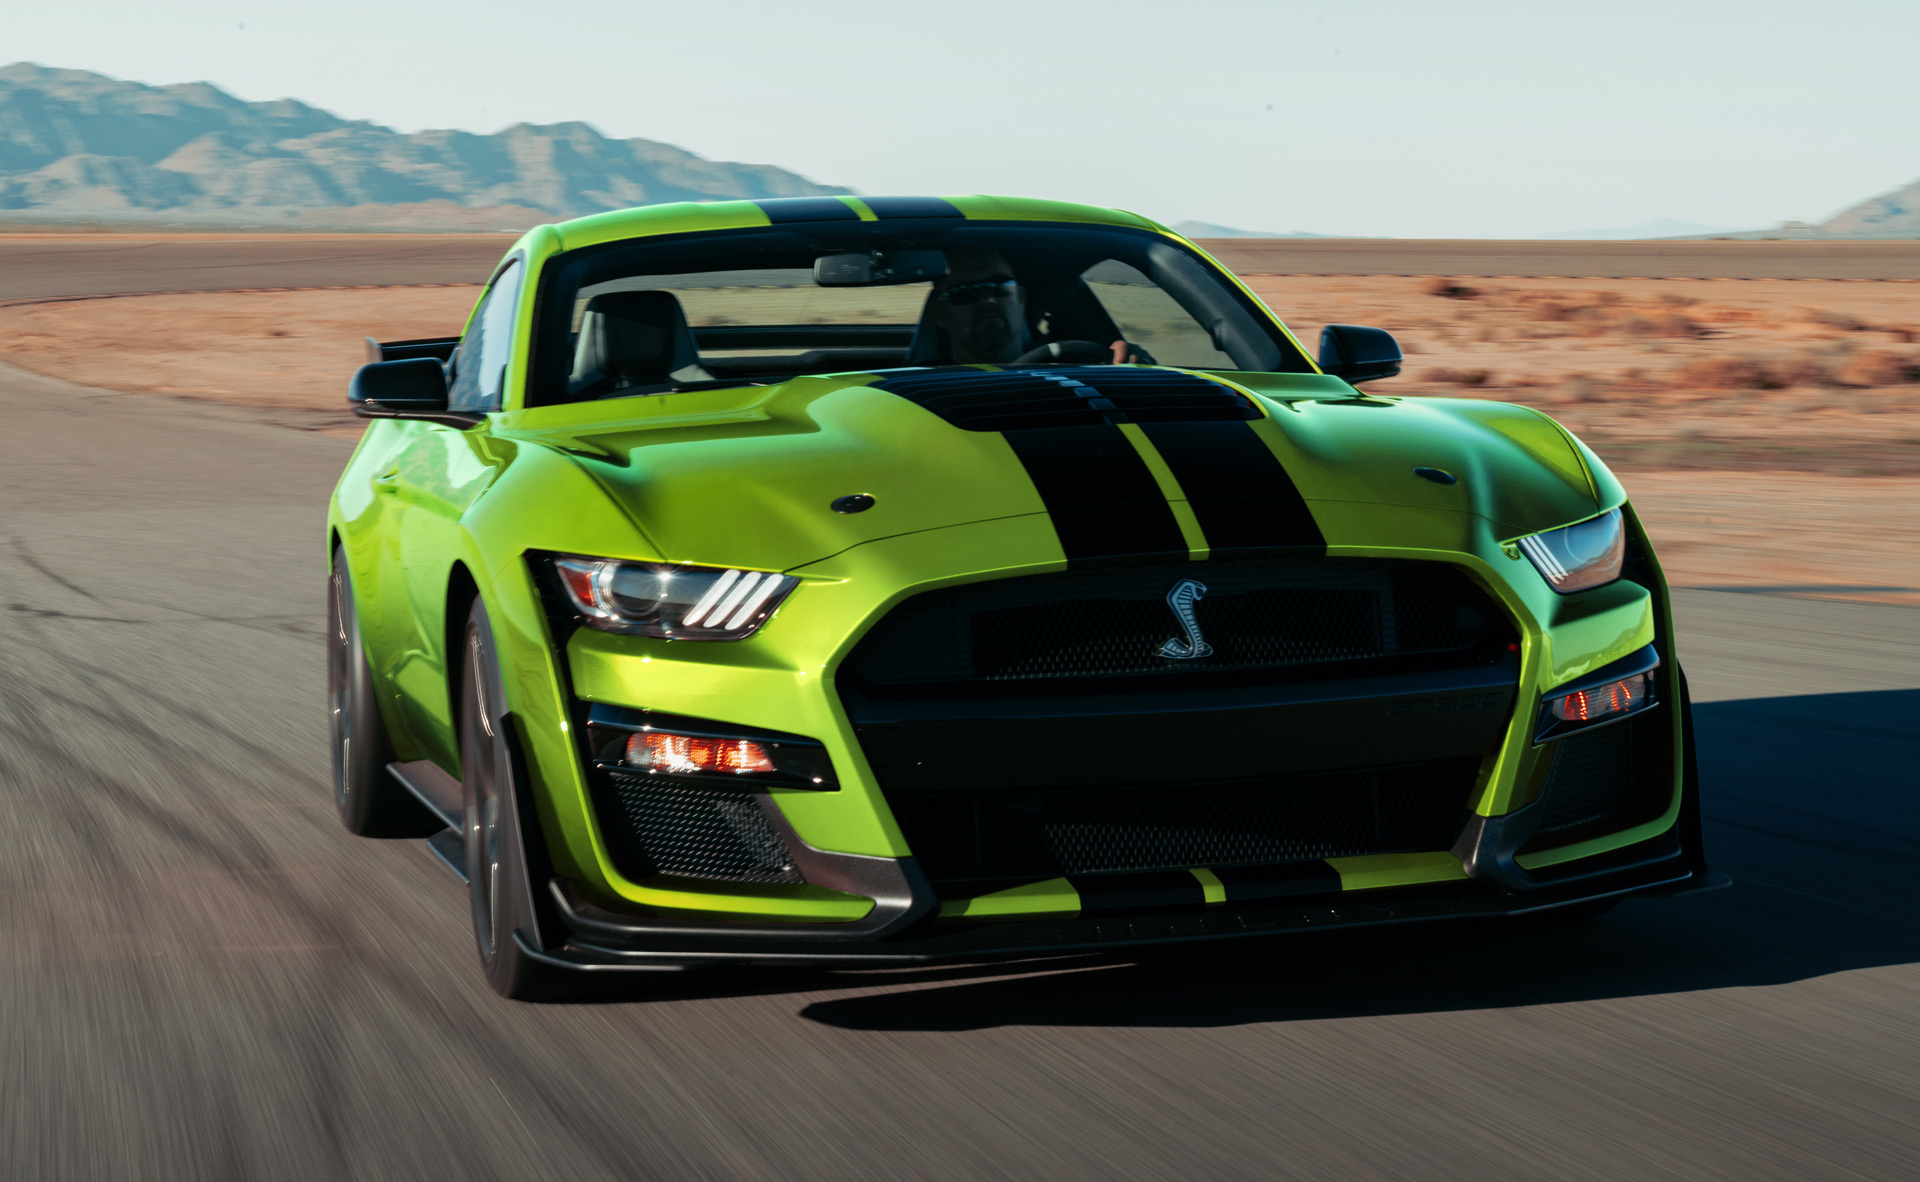 The 2020 Ford Mustang Shelby Gt500 Won't Be Sold In Europe